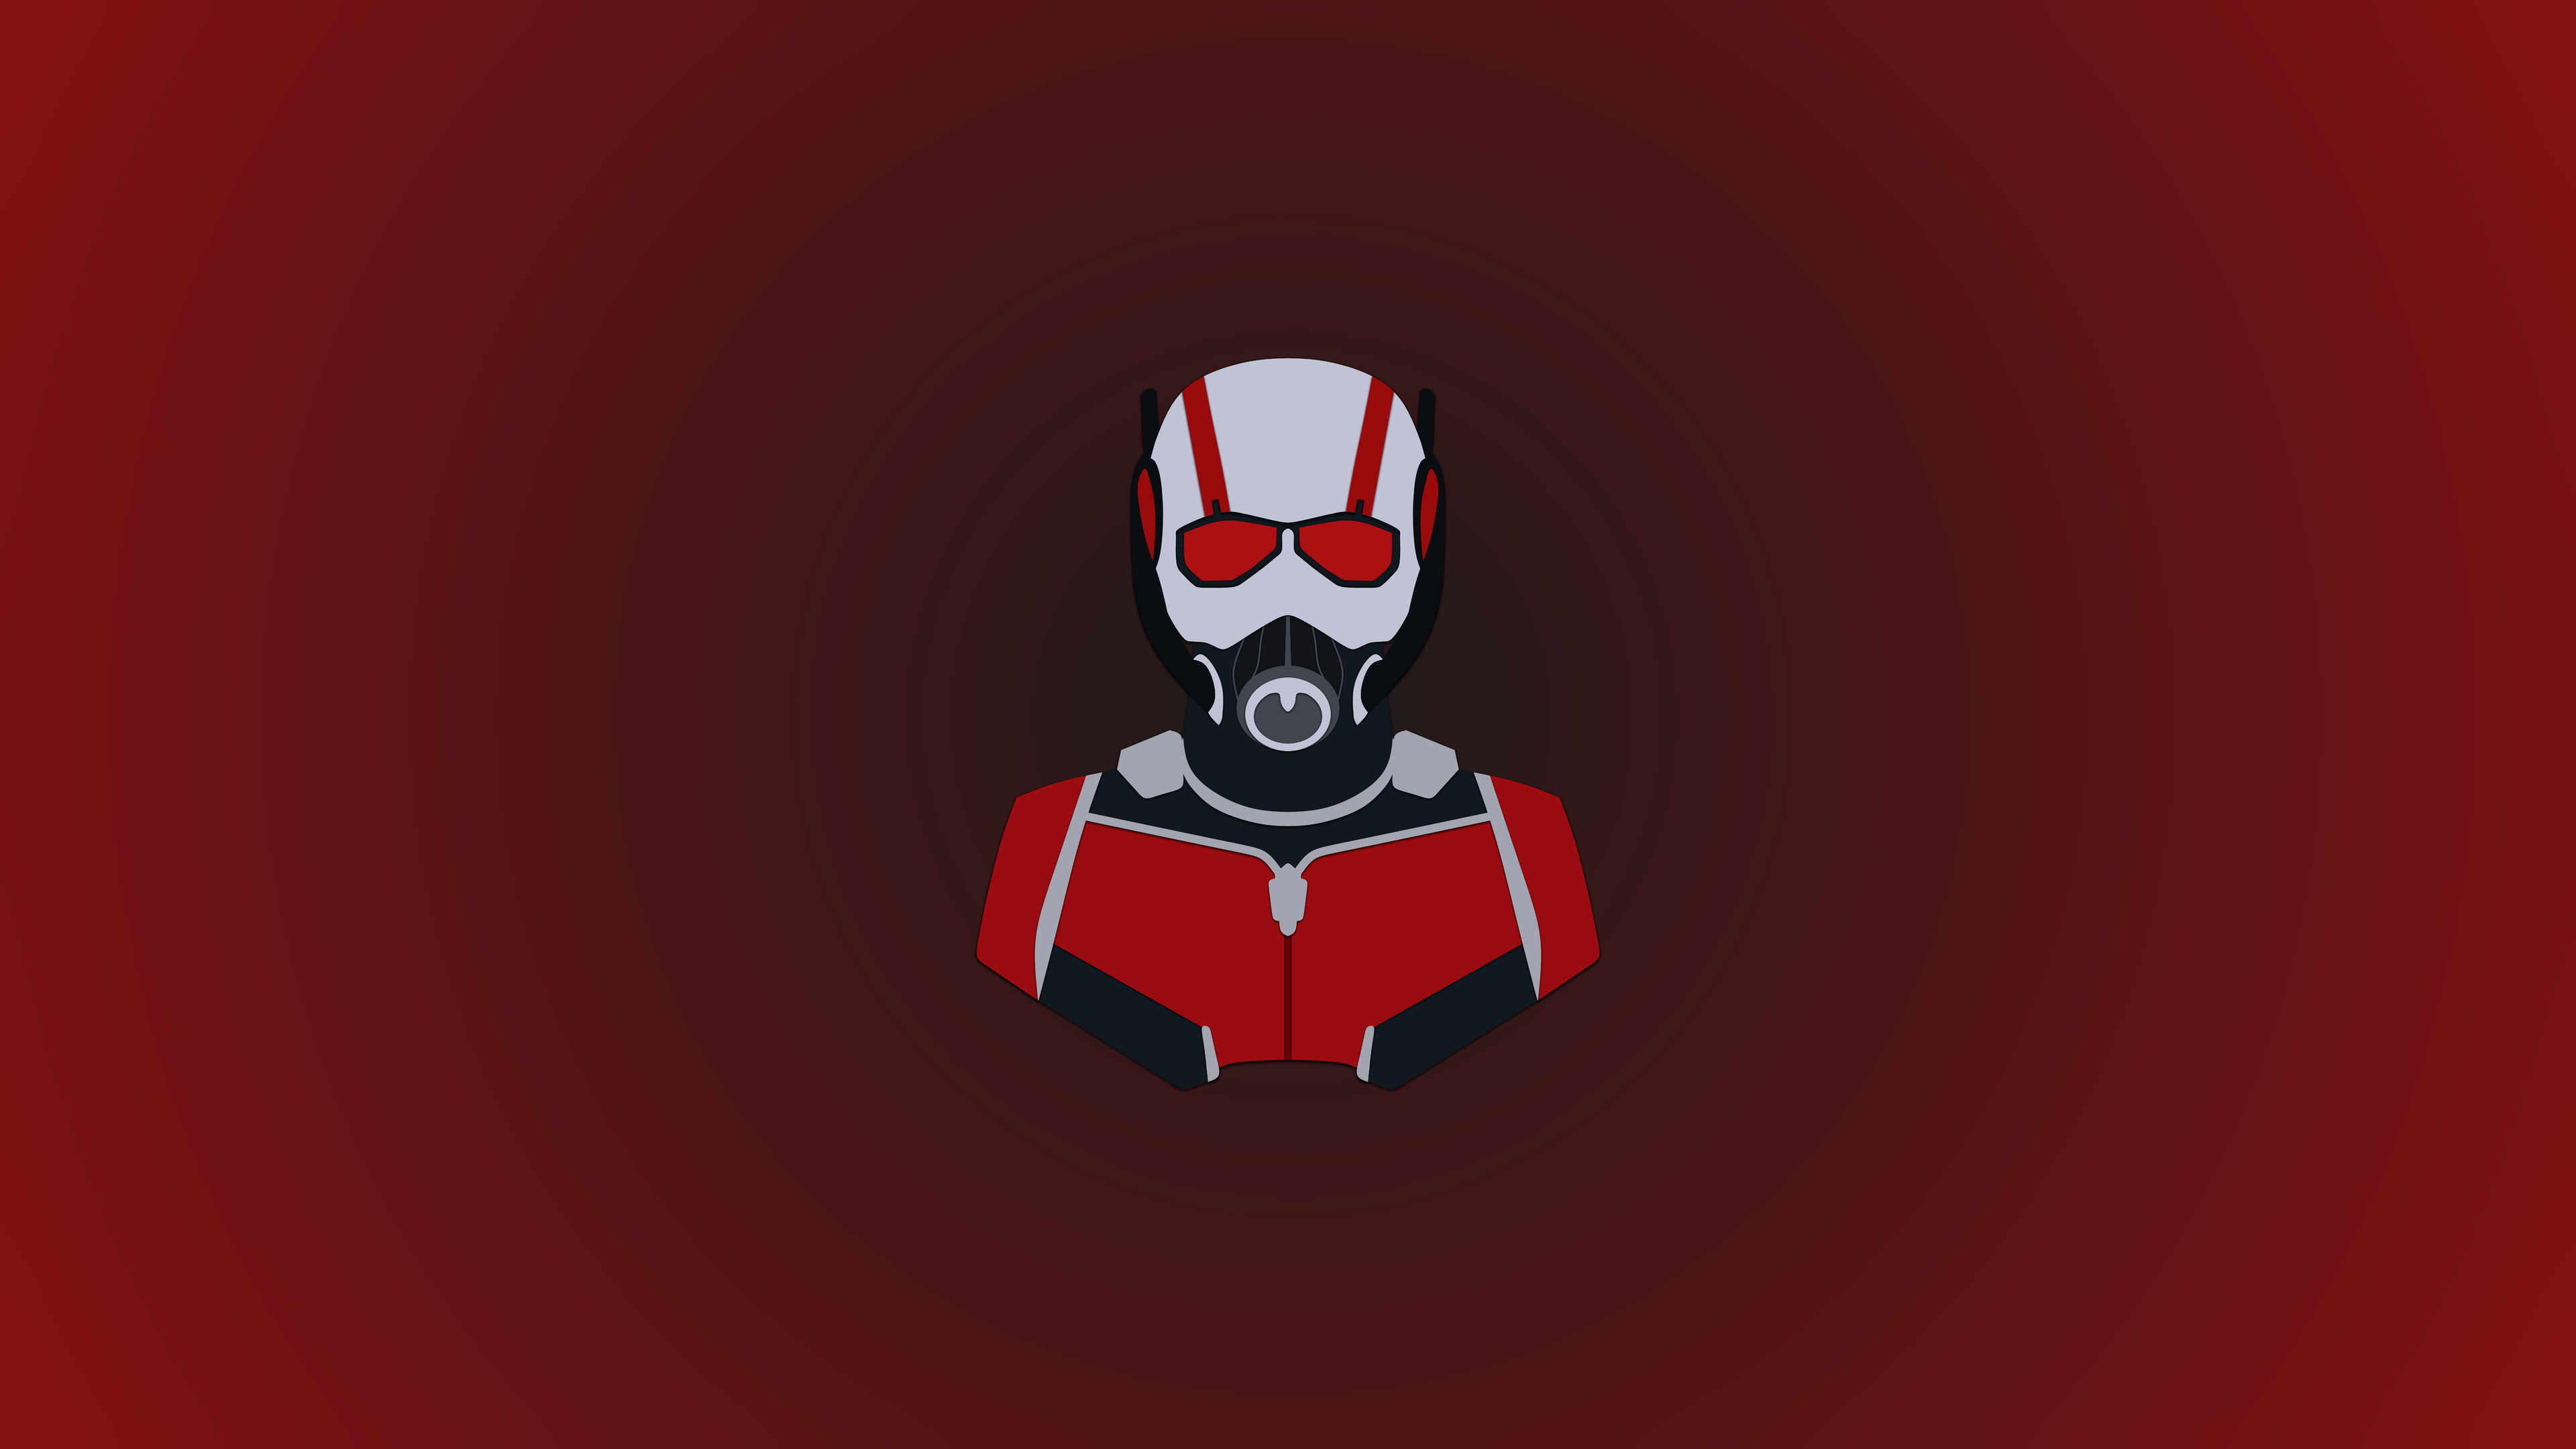 ant man minimalism 12k 1536522569 - Ant Man Minimalism 12k - superheroes wallpapers, minimalism wallpapers, hd-wallpapers, deviantart wallpapers, artwork wallpapers, artist wallpapers, ant man wallpapers, 8k wallpapers, 5k wallpapers, 4k-wallpapers, 12k wallpapers, 10k wallpapers